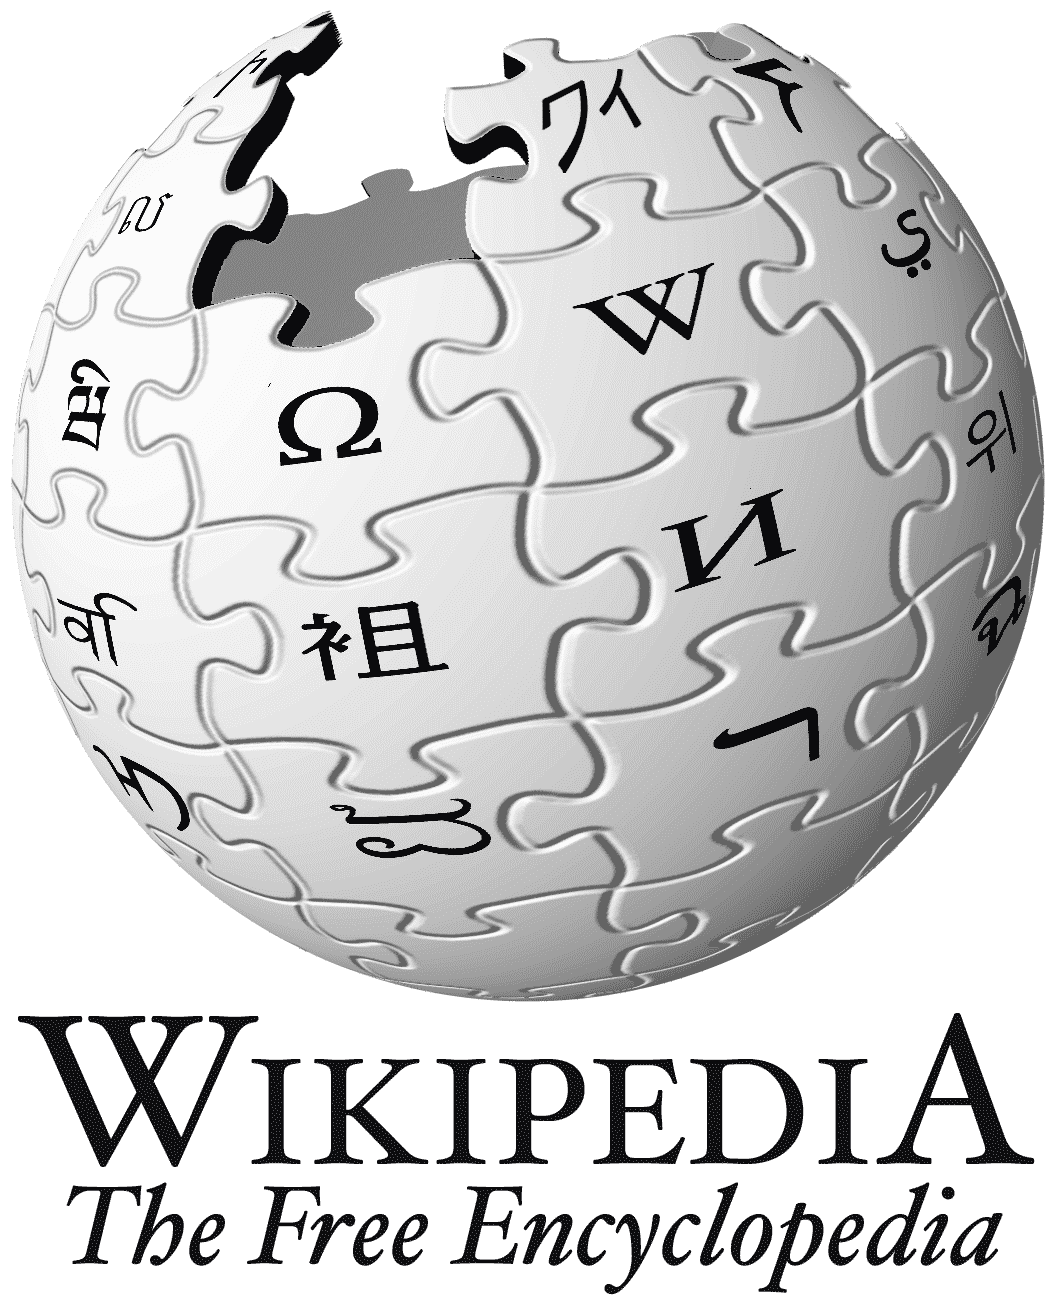 What is the internet - Wikipedia